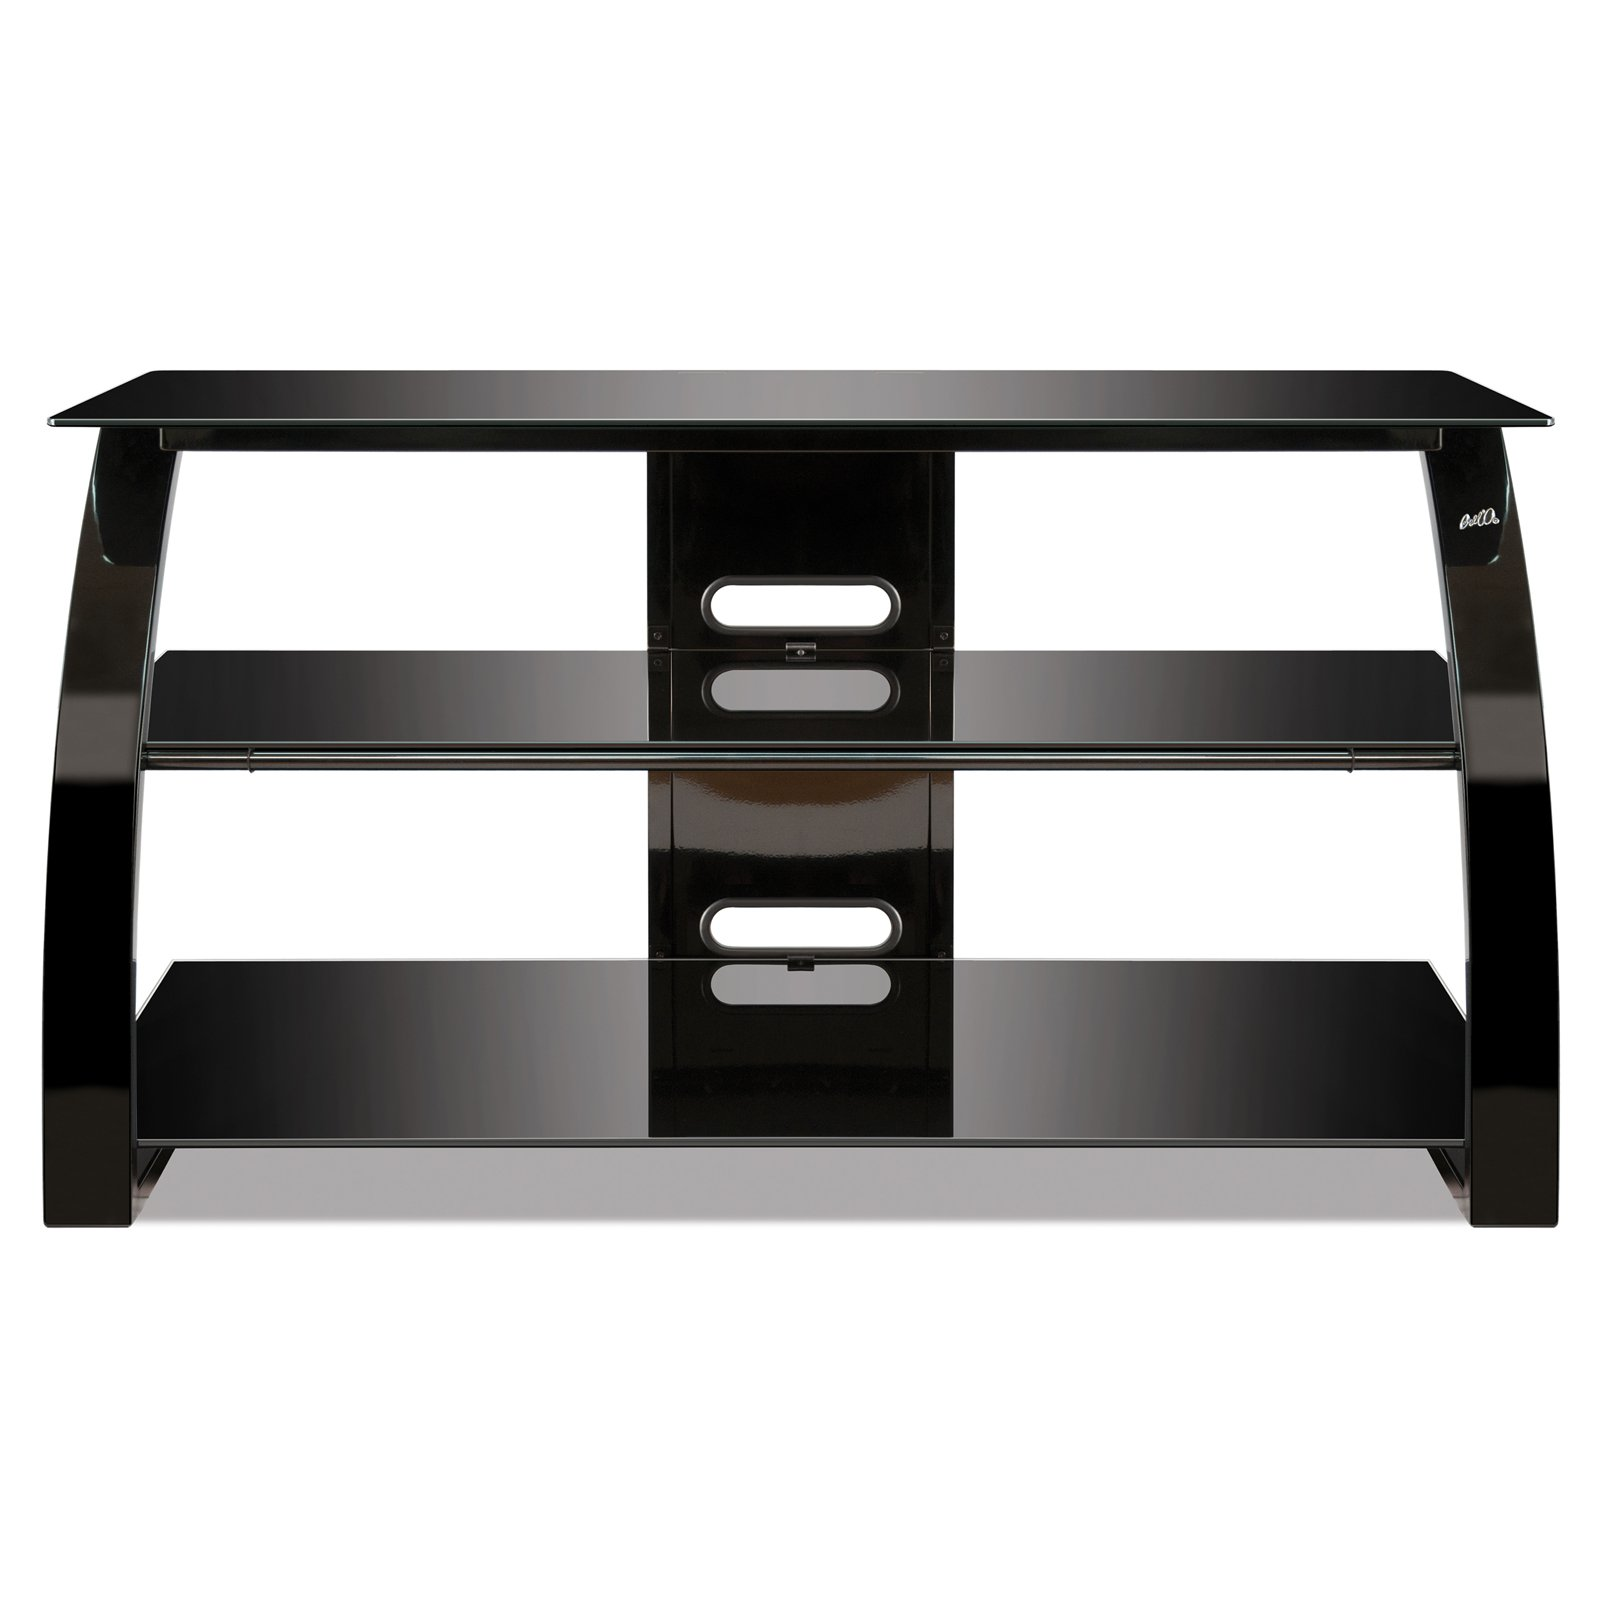 BellO Flat Panel TV Stand - High Gloss Black - 42 in.